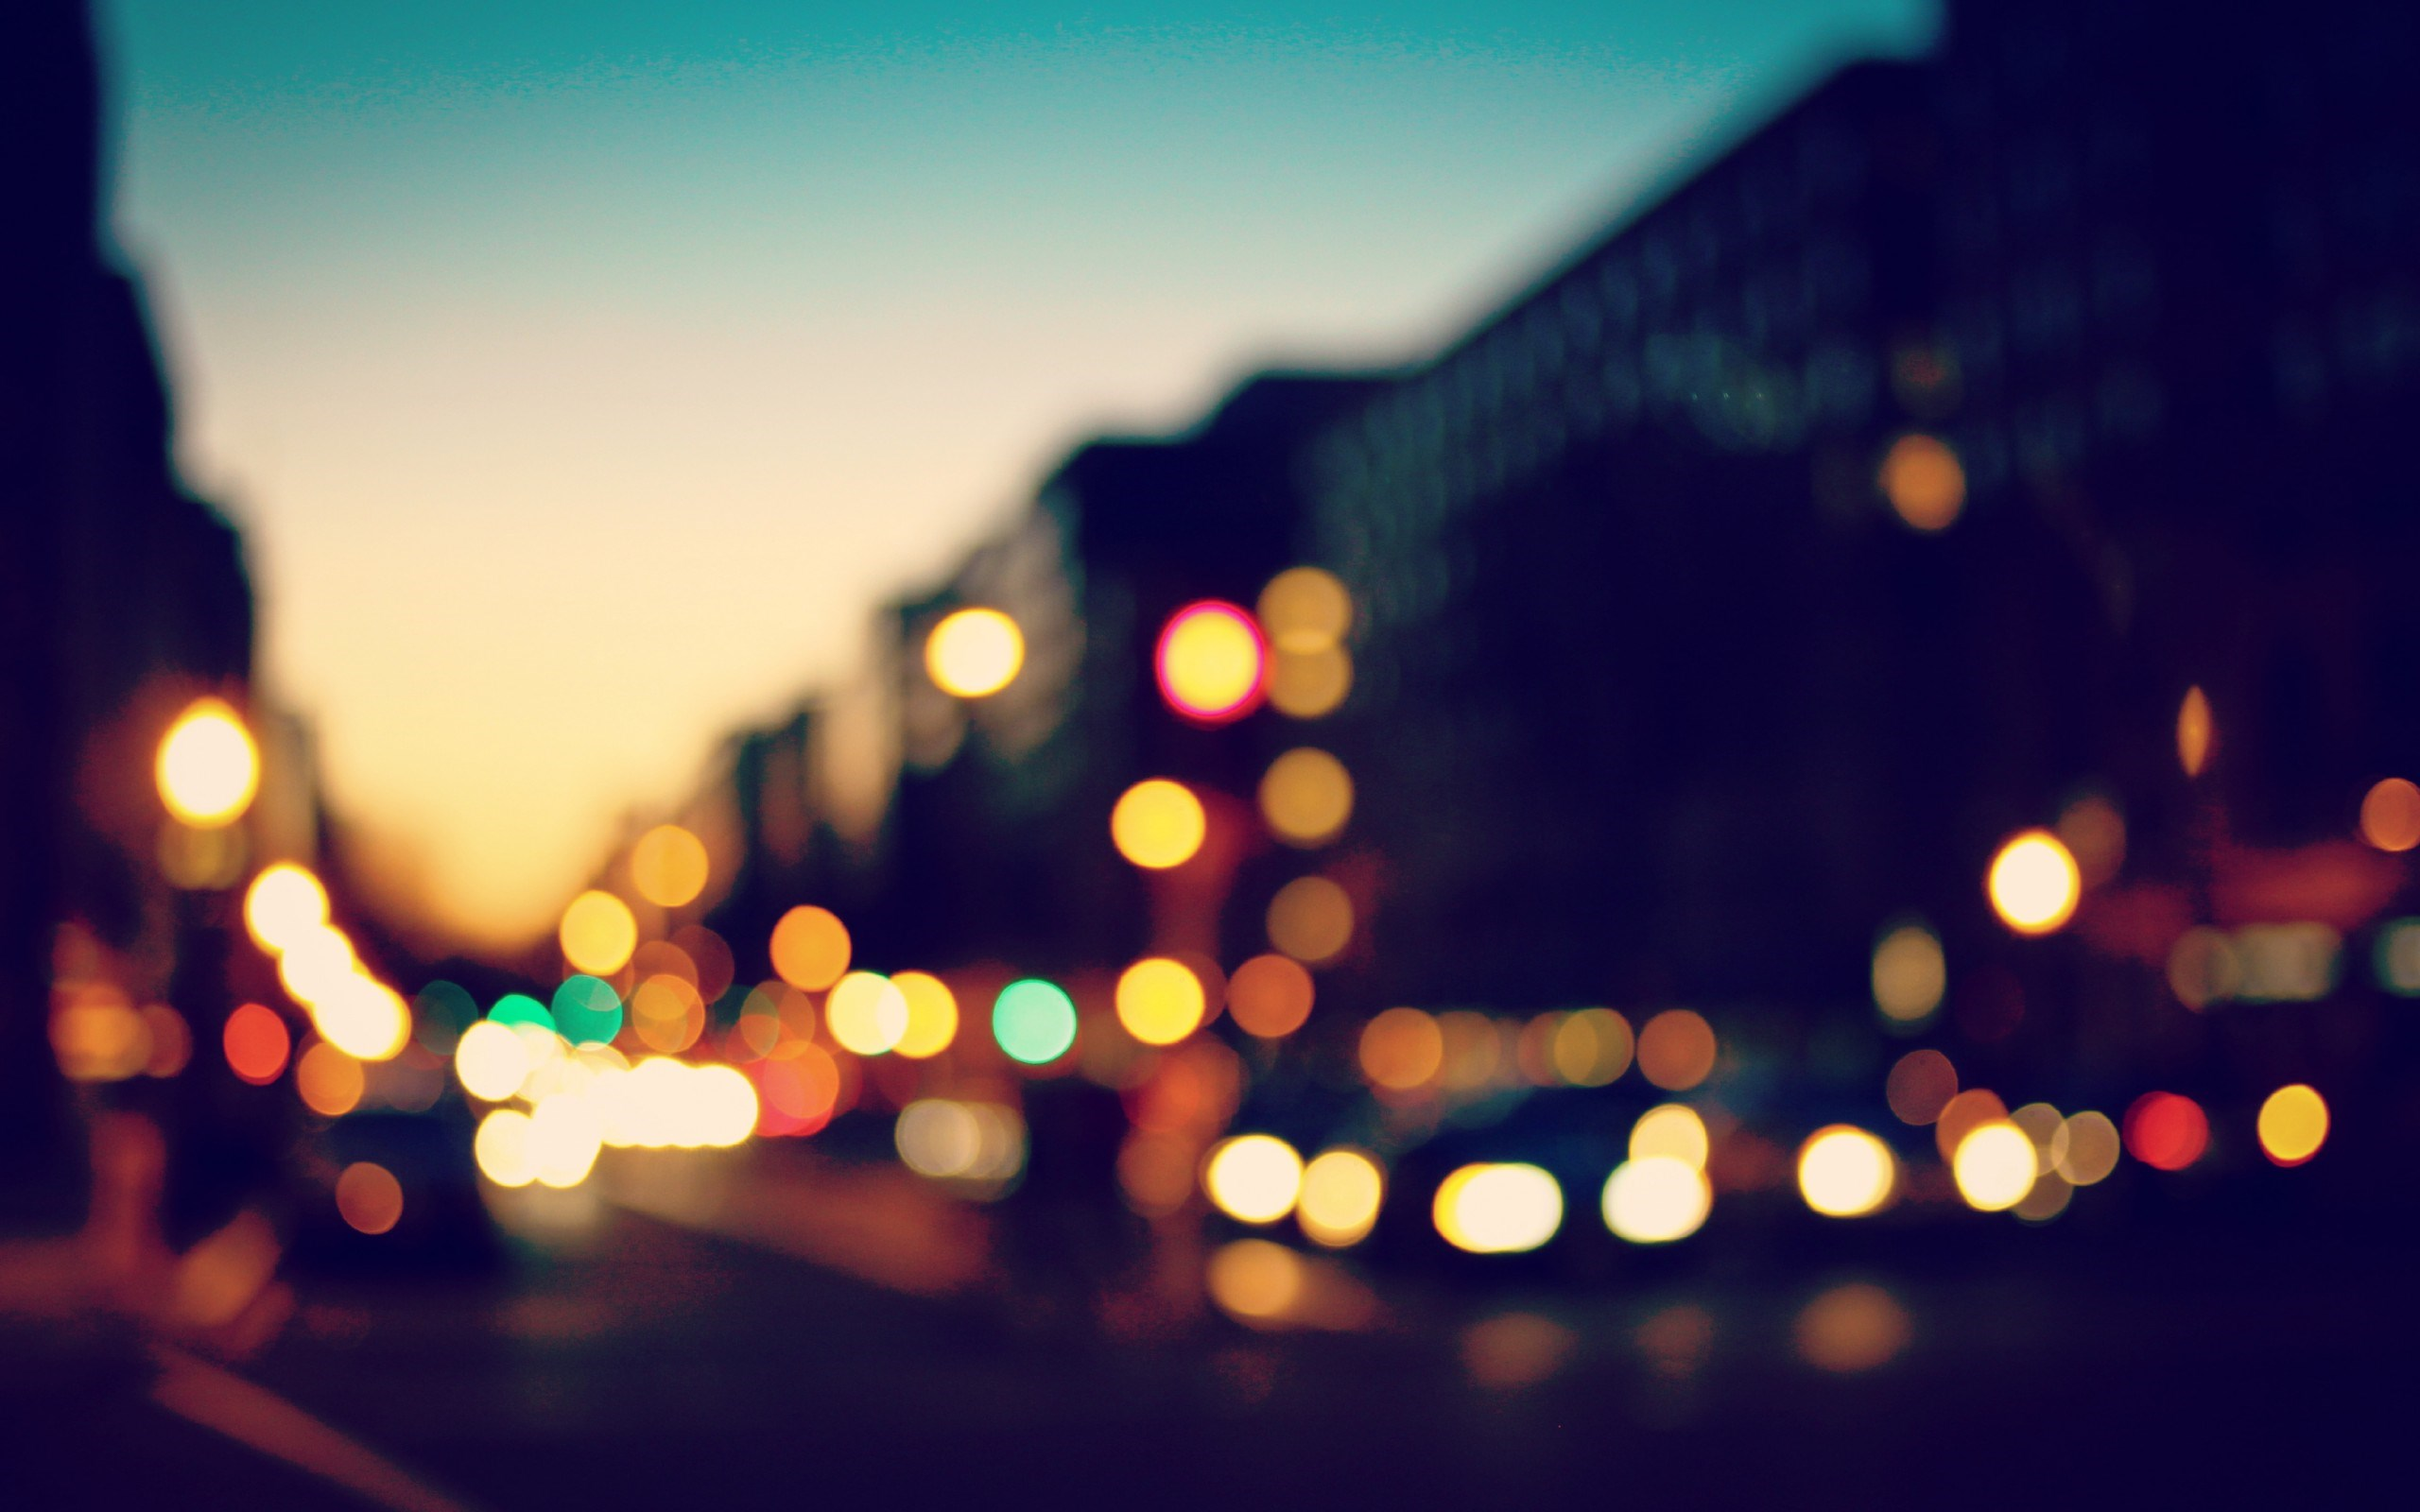 Bokeh Lights Sunset City